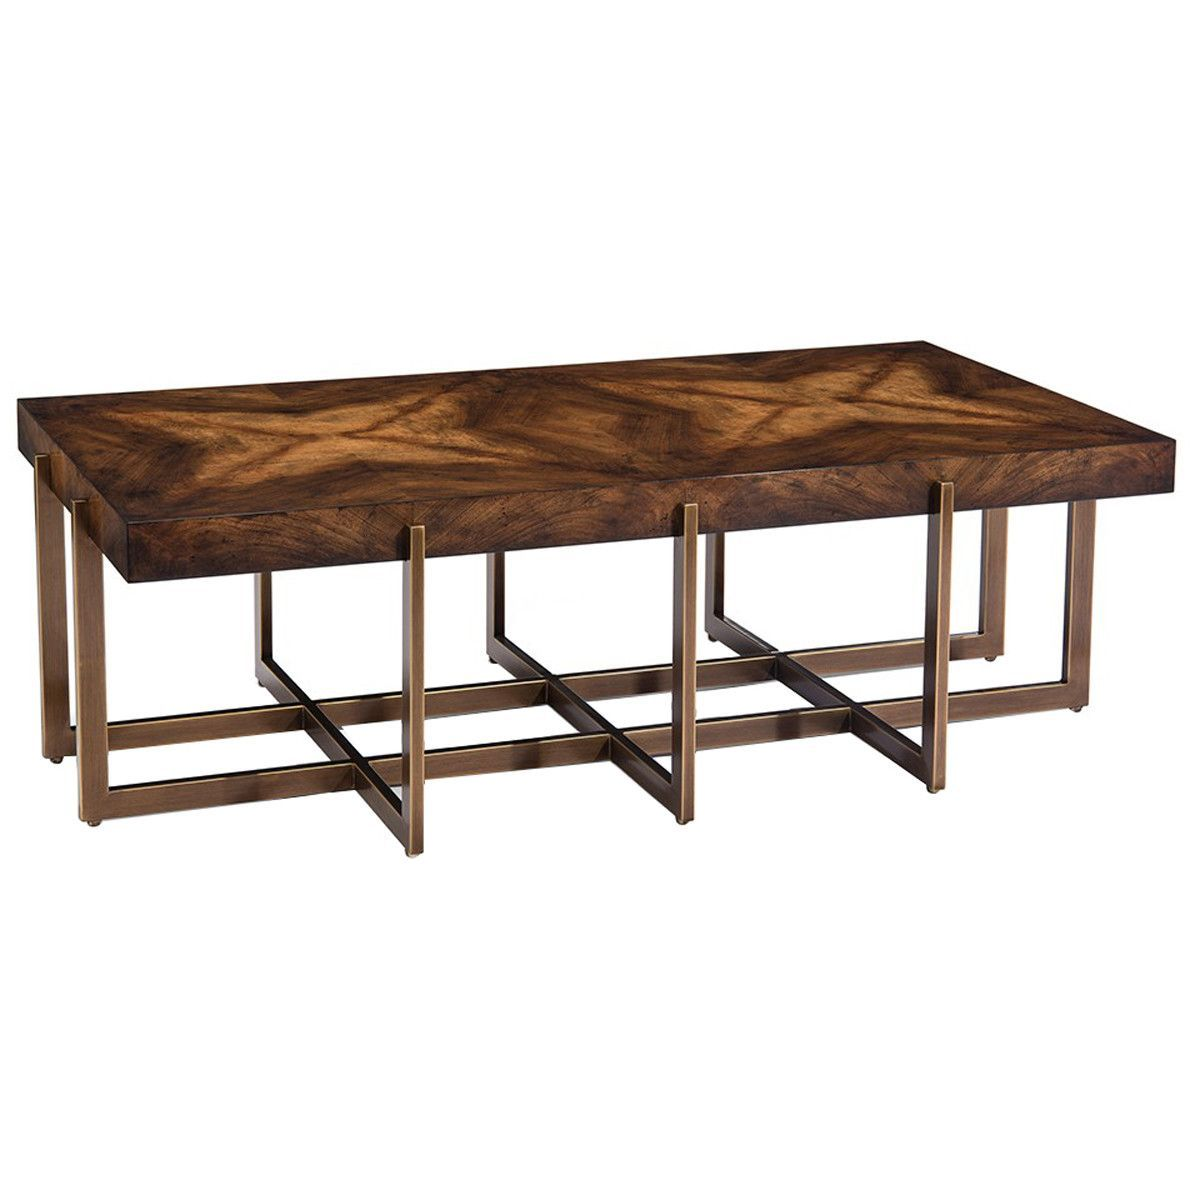 John Richard Hexham Cocktail Table Steel And Tables - John richard coffee table